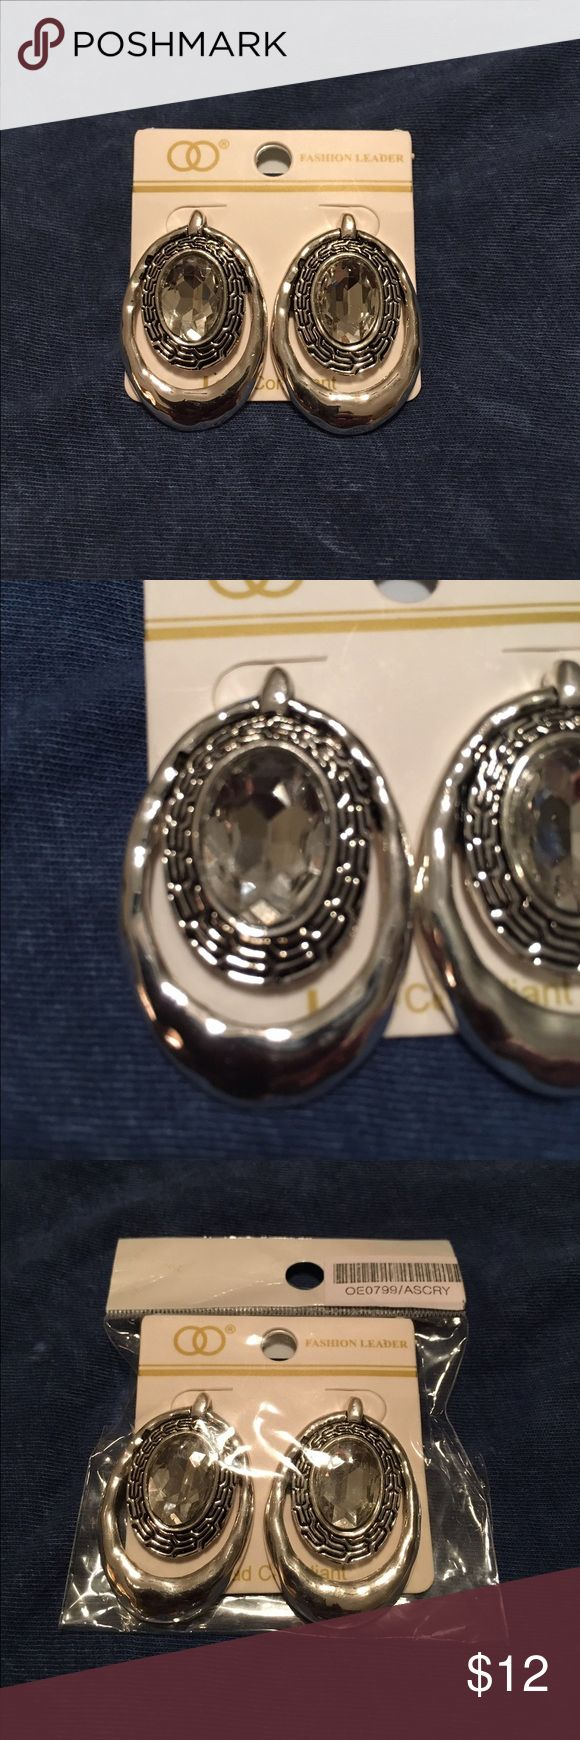 """Beautiful Silver Rhinestone Earrings This is a pair of new in the bag silver and rhinestone pierced earrings with a black inlayed design.  They have never been worn and are beautiful !  They measure about 1 1/2"""" in length. Jewelry Earrings"""